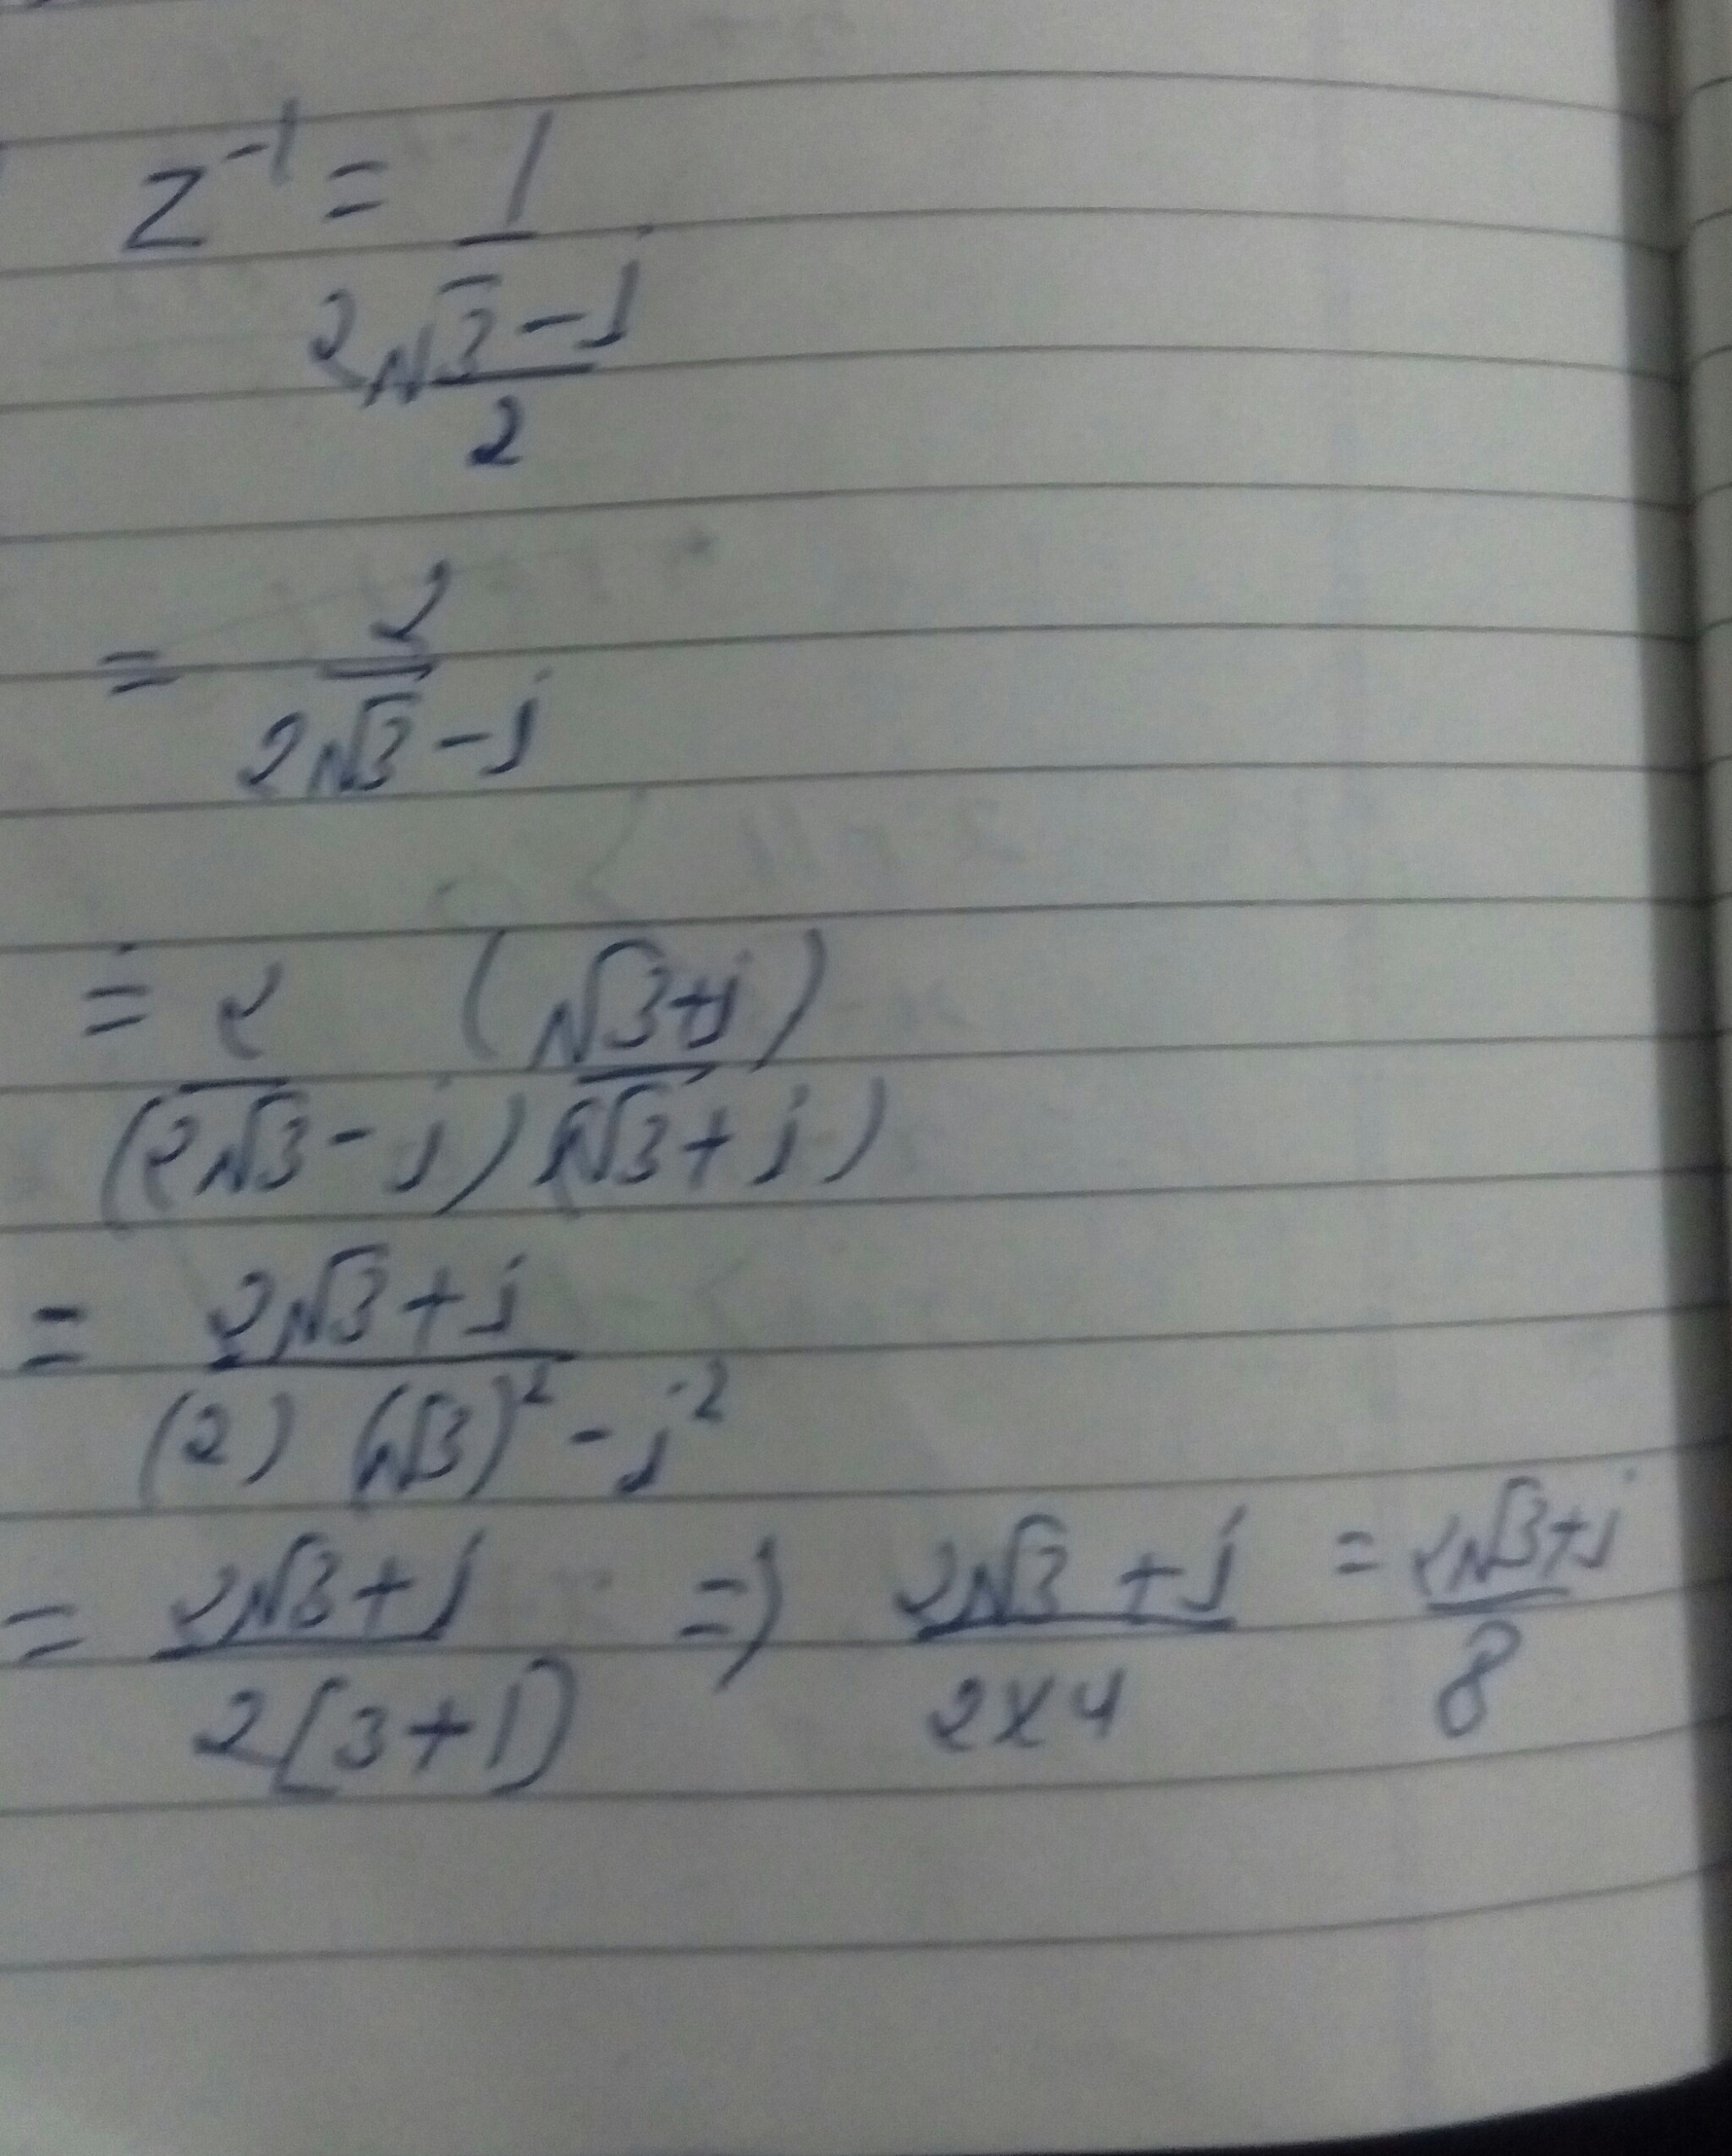 Find The Multiplicative Inverse Of 3 I 2